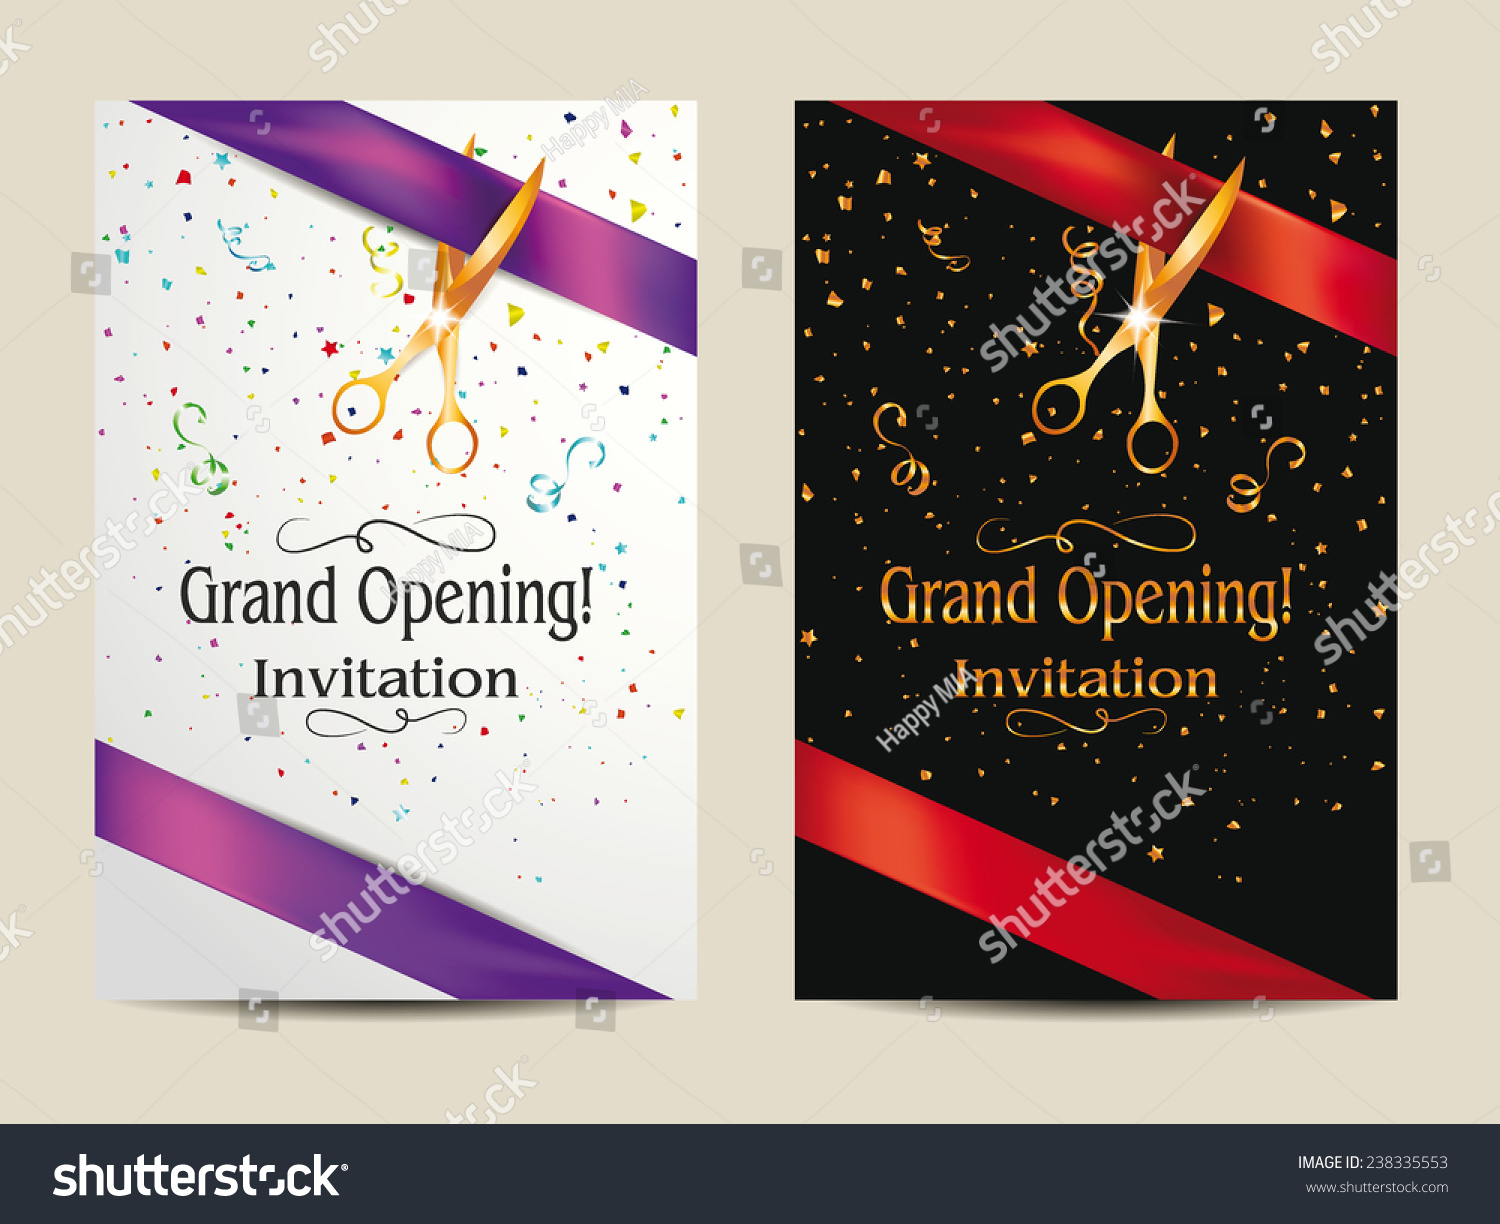 Invitation Cards Designs For Shop Opening opening ceremony stock ...